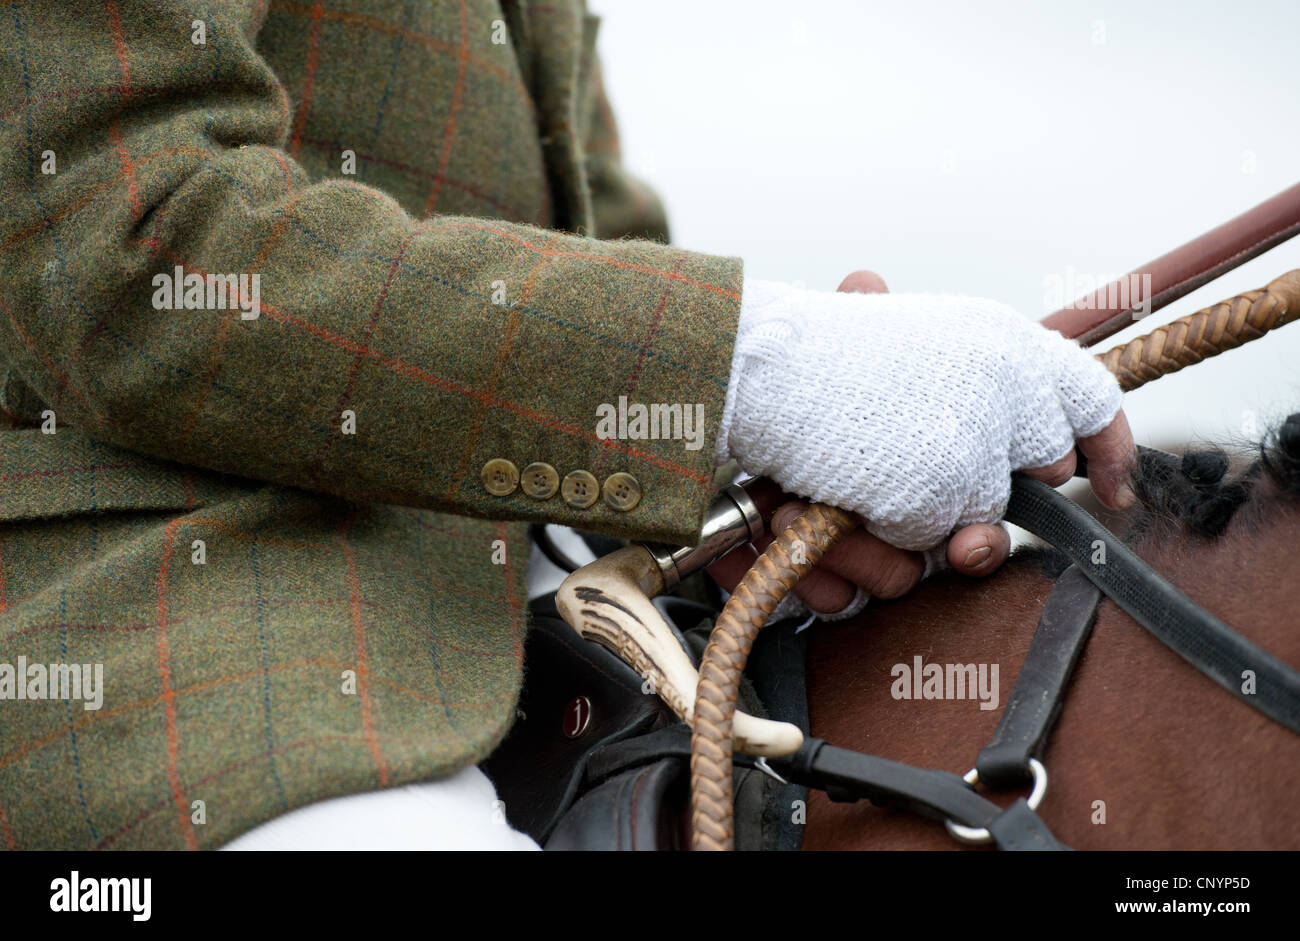 Hunting tweed and crop - Stock Image